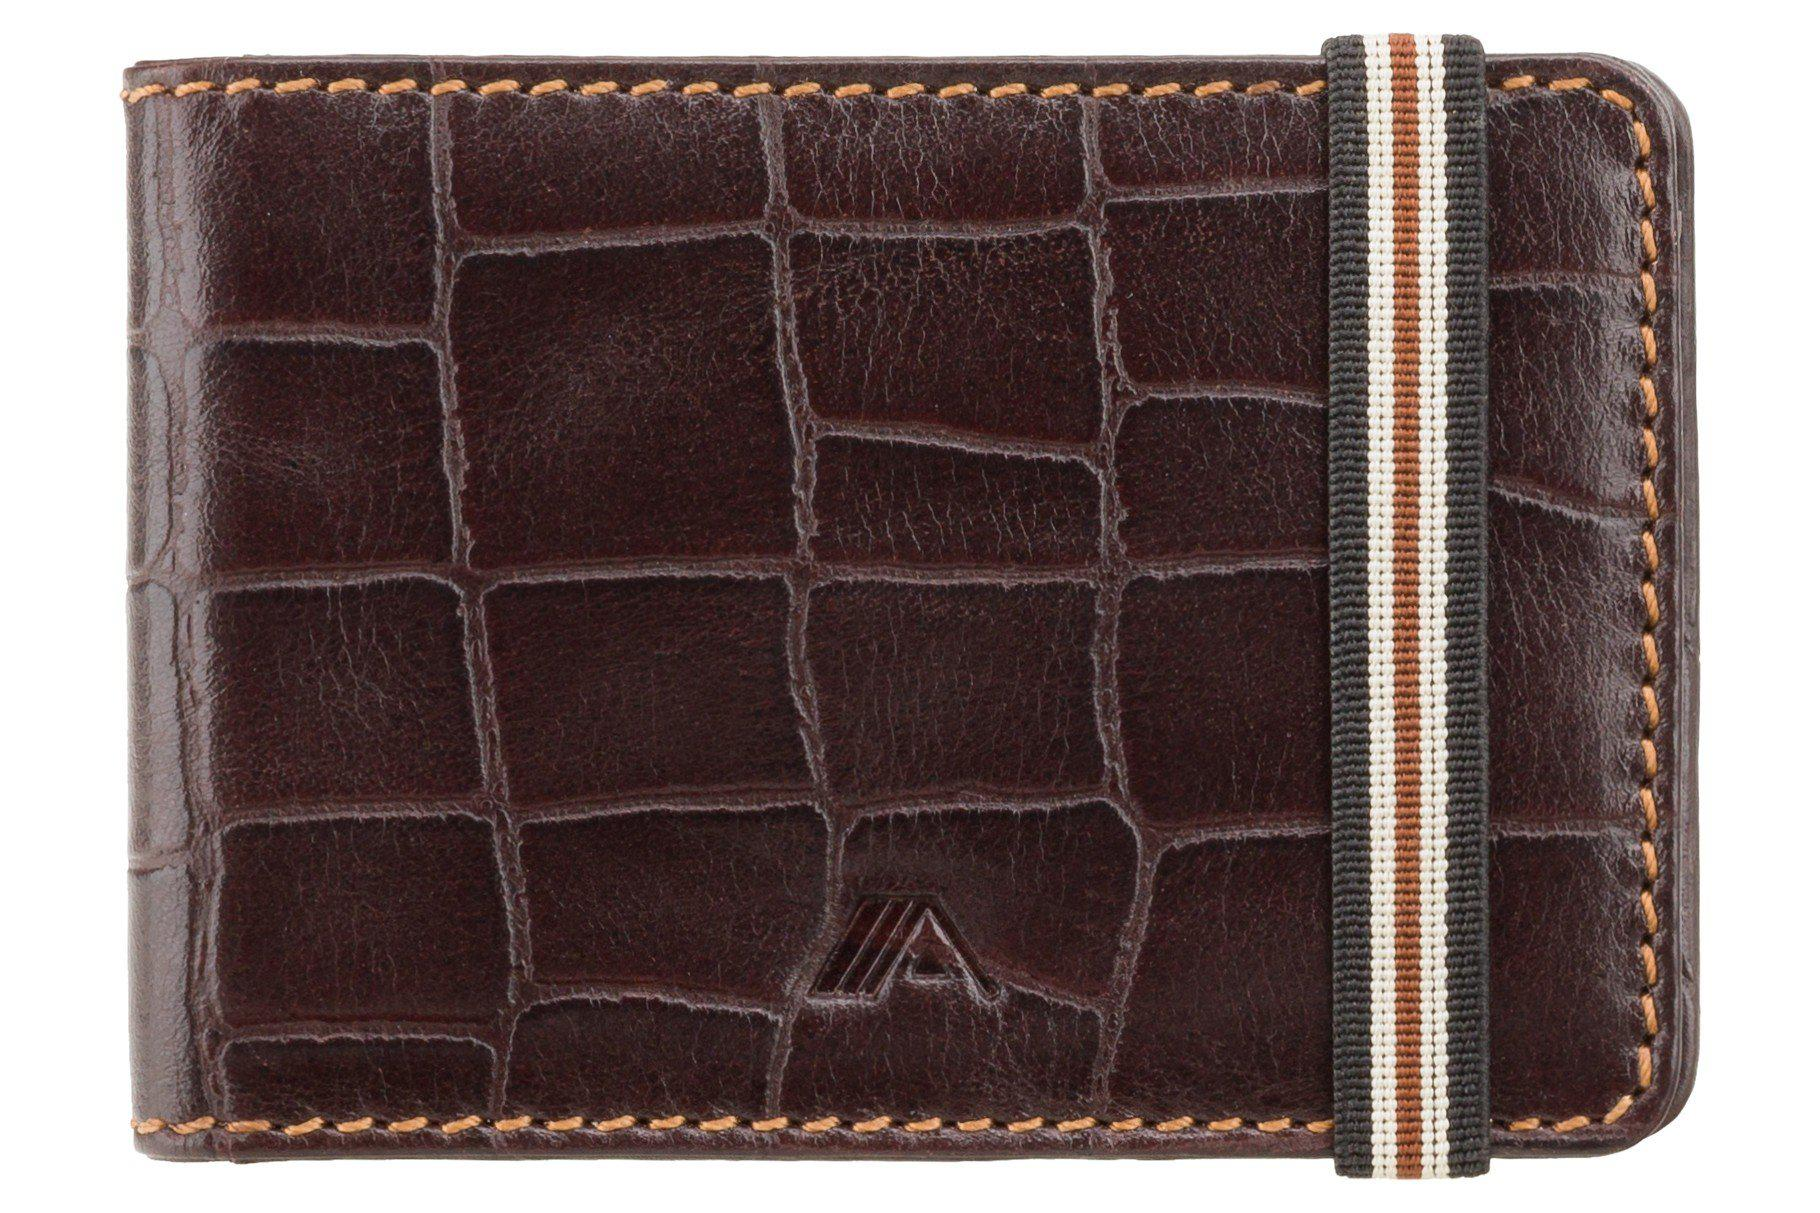 Wallet - Kihaku Leather Wallet